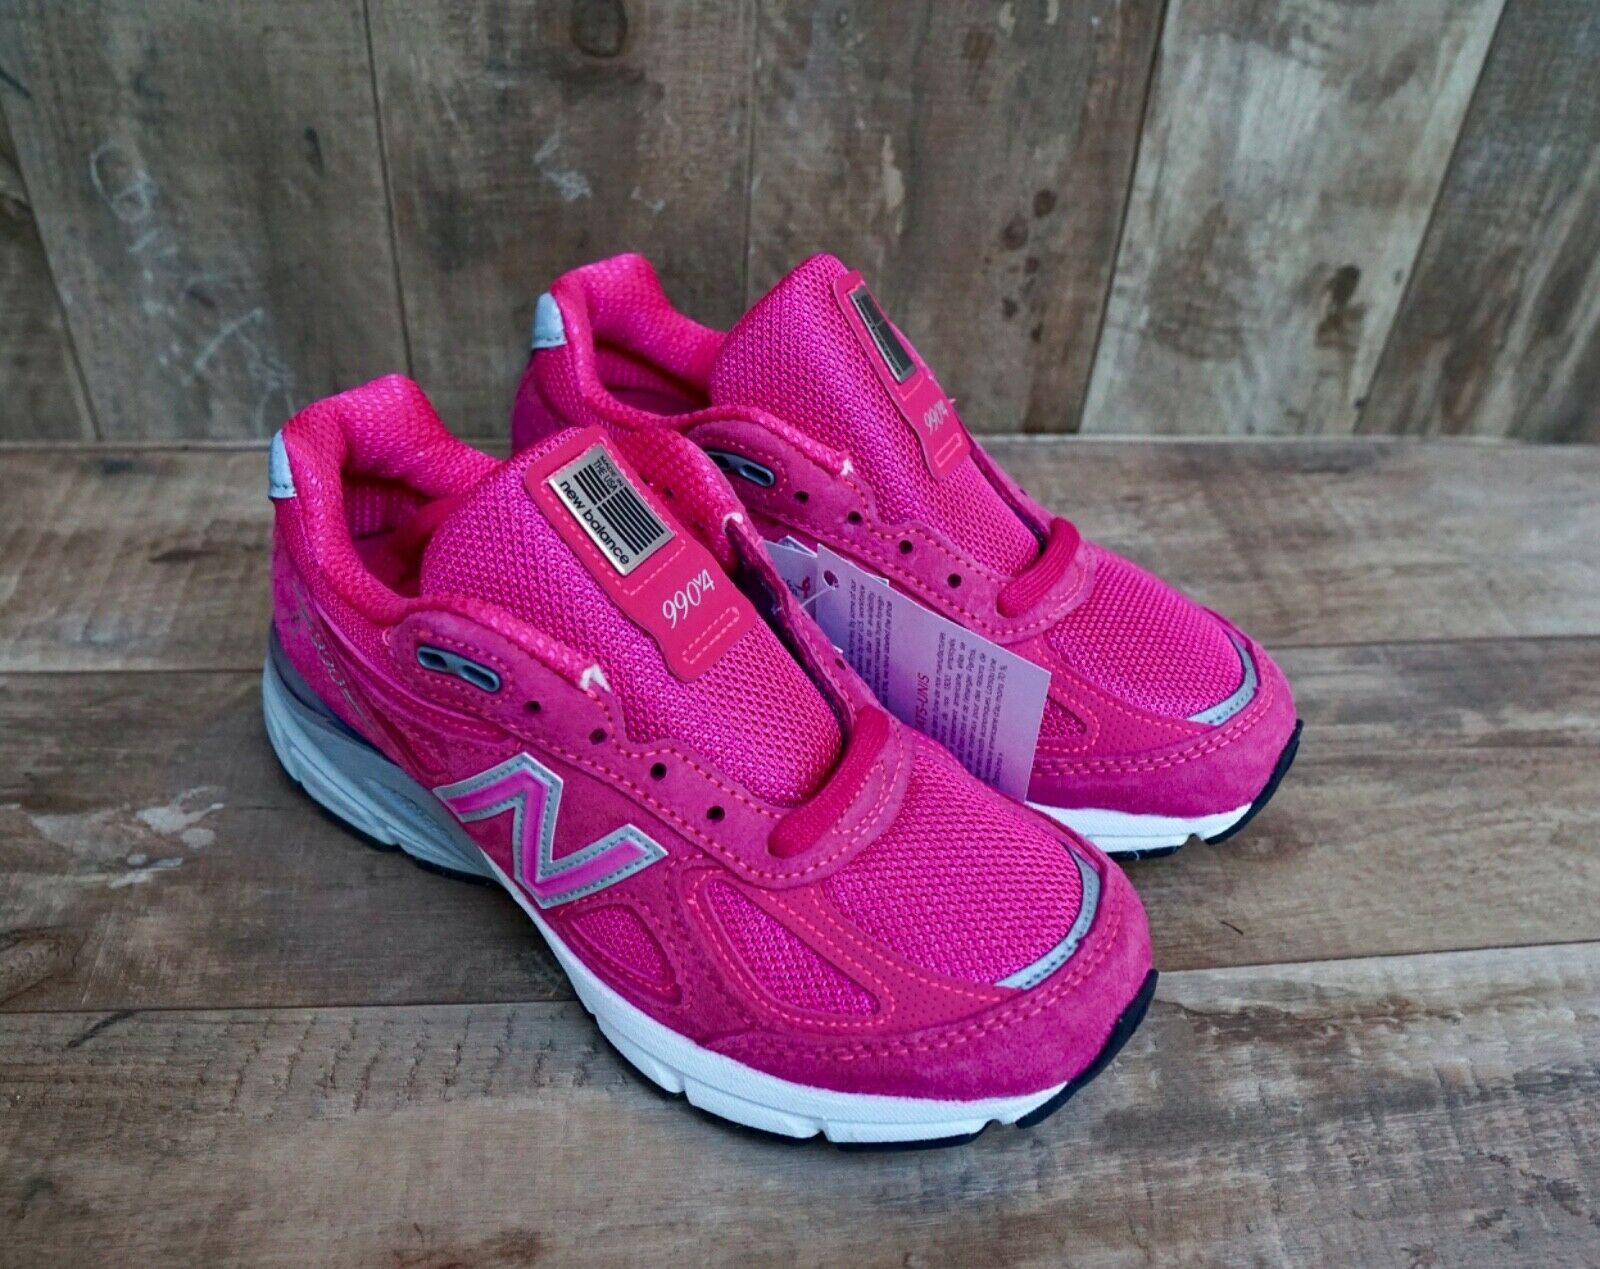 New New Balance Pink Ribbon 990v4 Women's Running shoes Select-a-Size W990KMV